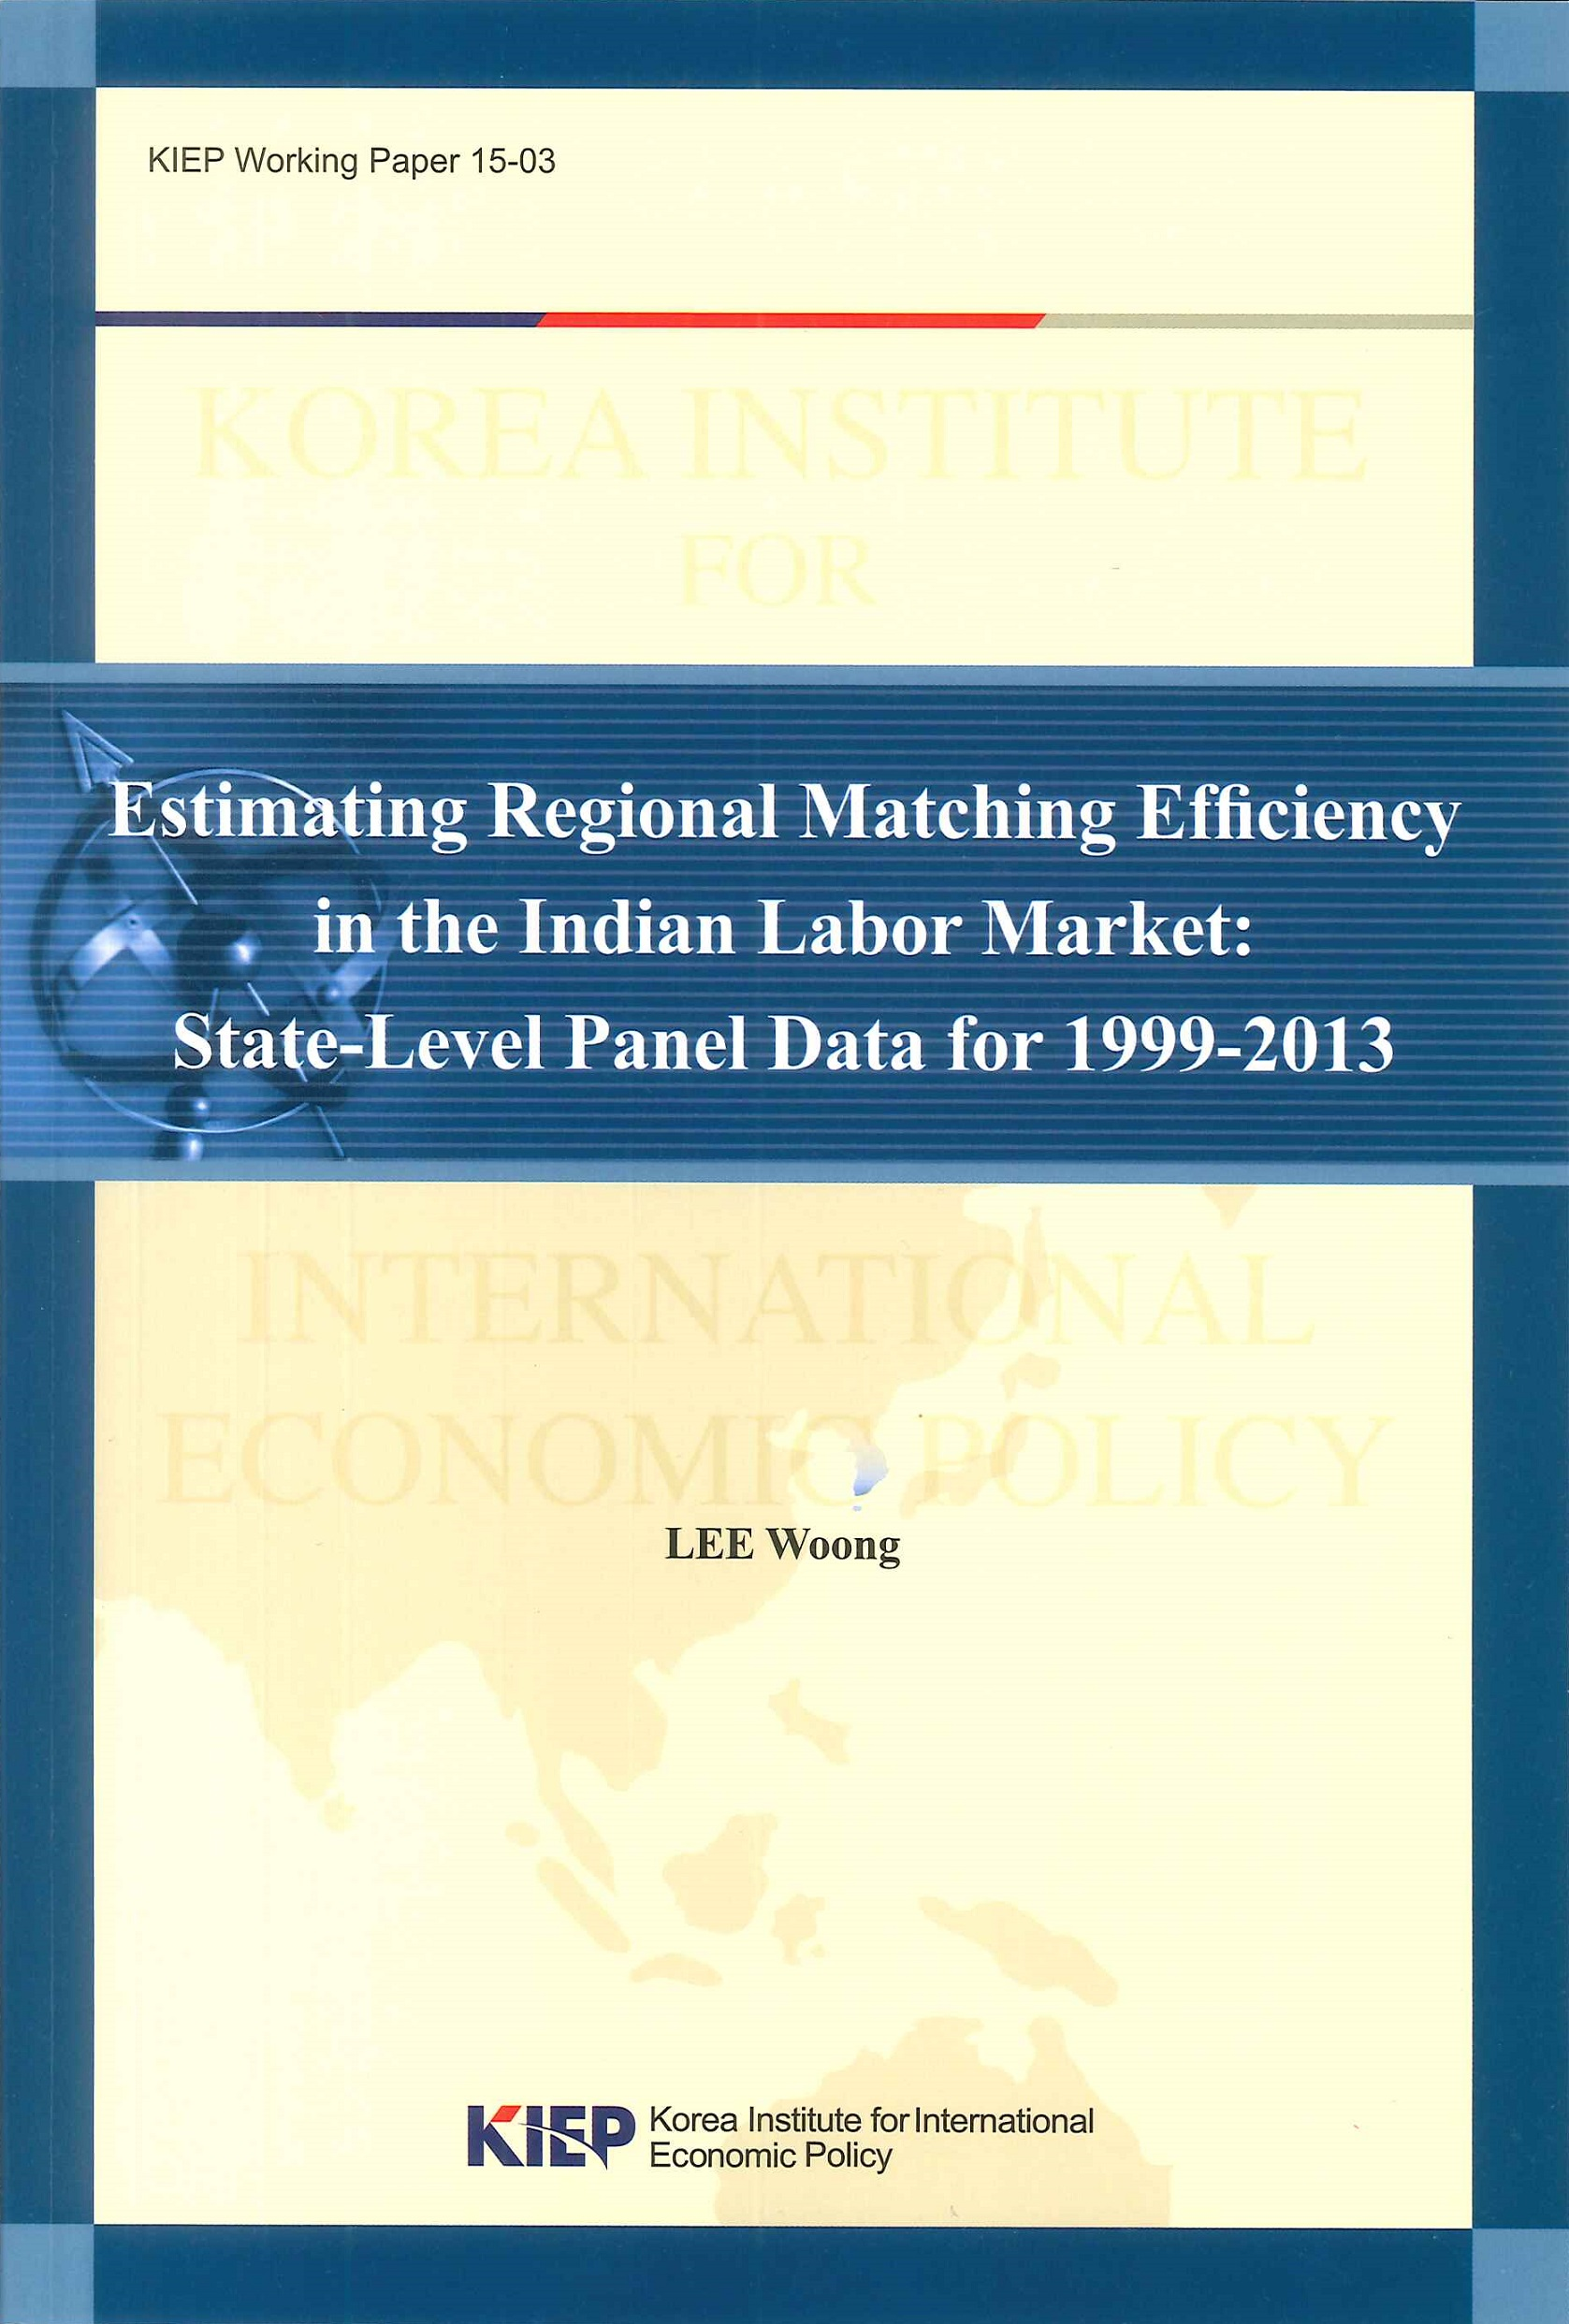 Estimating regional matching efficiency in the Indian labor market:state-level panel data for 1999-2013